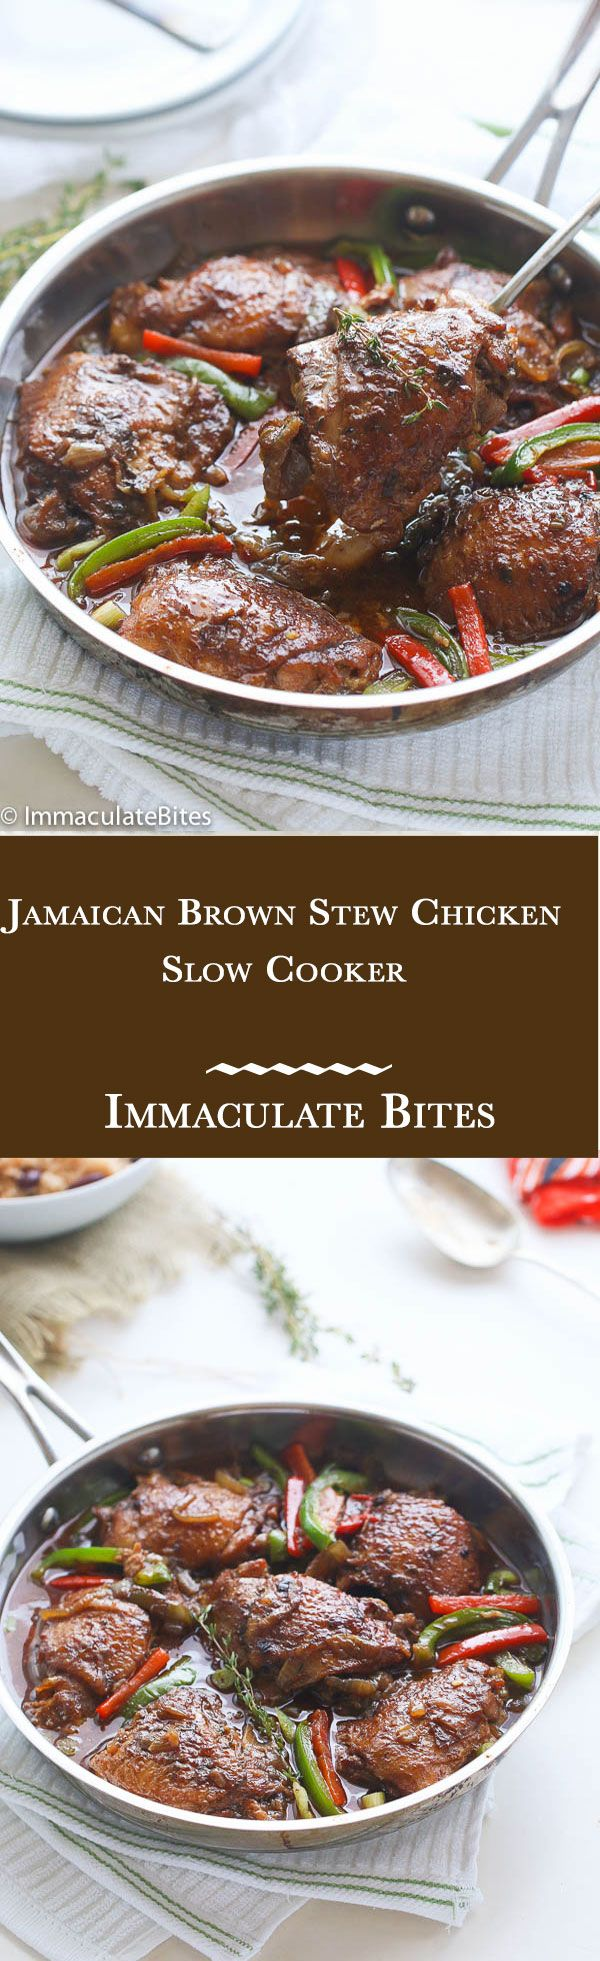 Slow Cooker Jamaican Brown Stew Chicken  *made this yesterday and it was AWESOME. I added about 1/4 tsp All Spice, 1/8 tsp Cinnamon and 2 Bay Leaves. Used 4 thighs and 6 drumsticks.